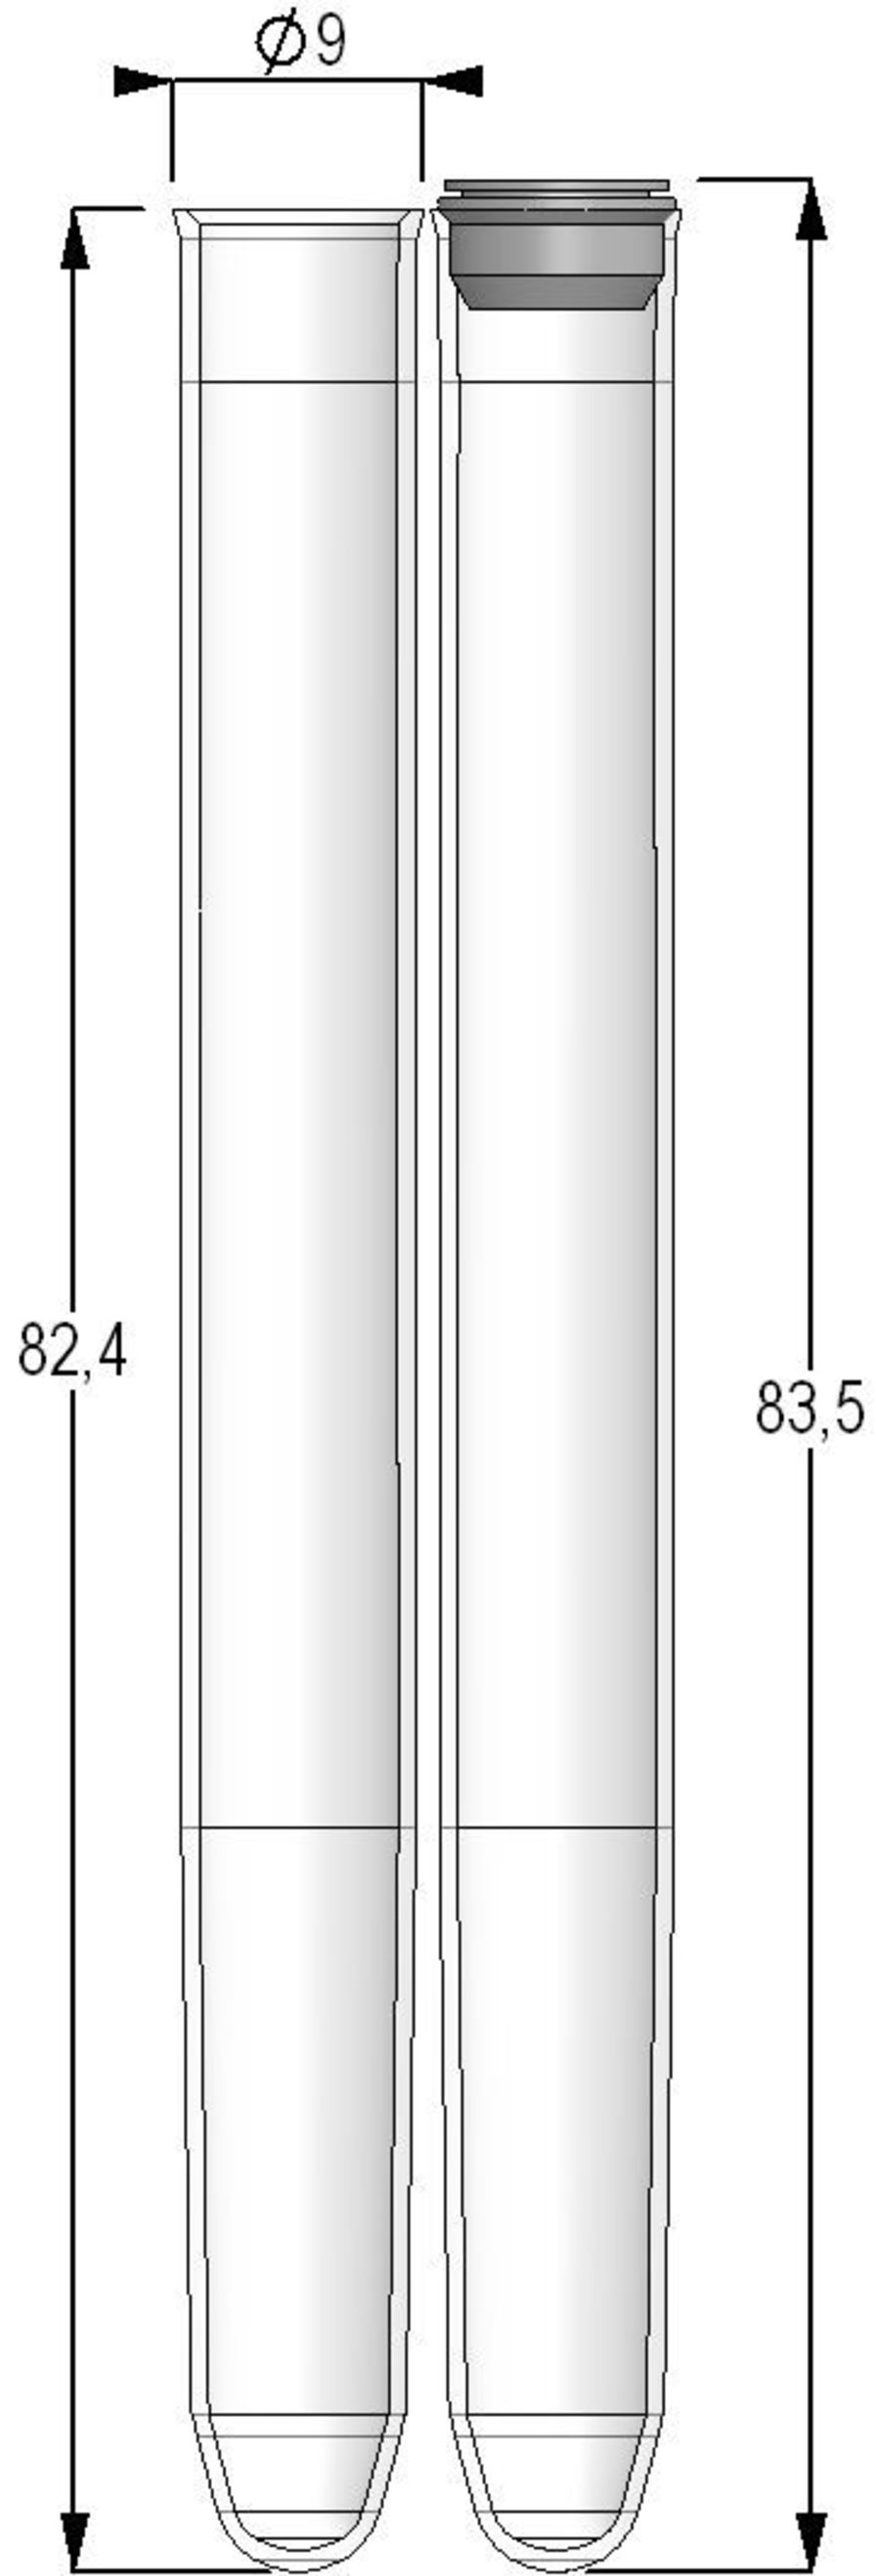 U-bottom test tube / cylindrical / polypropylene 2.50 ml | MPW32073BC3, MP32032 Micronic